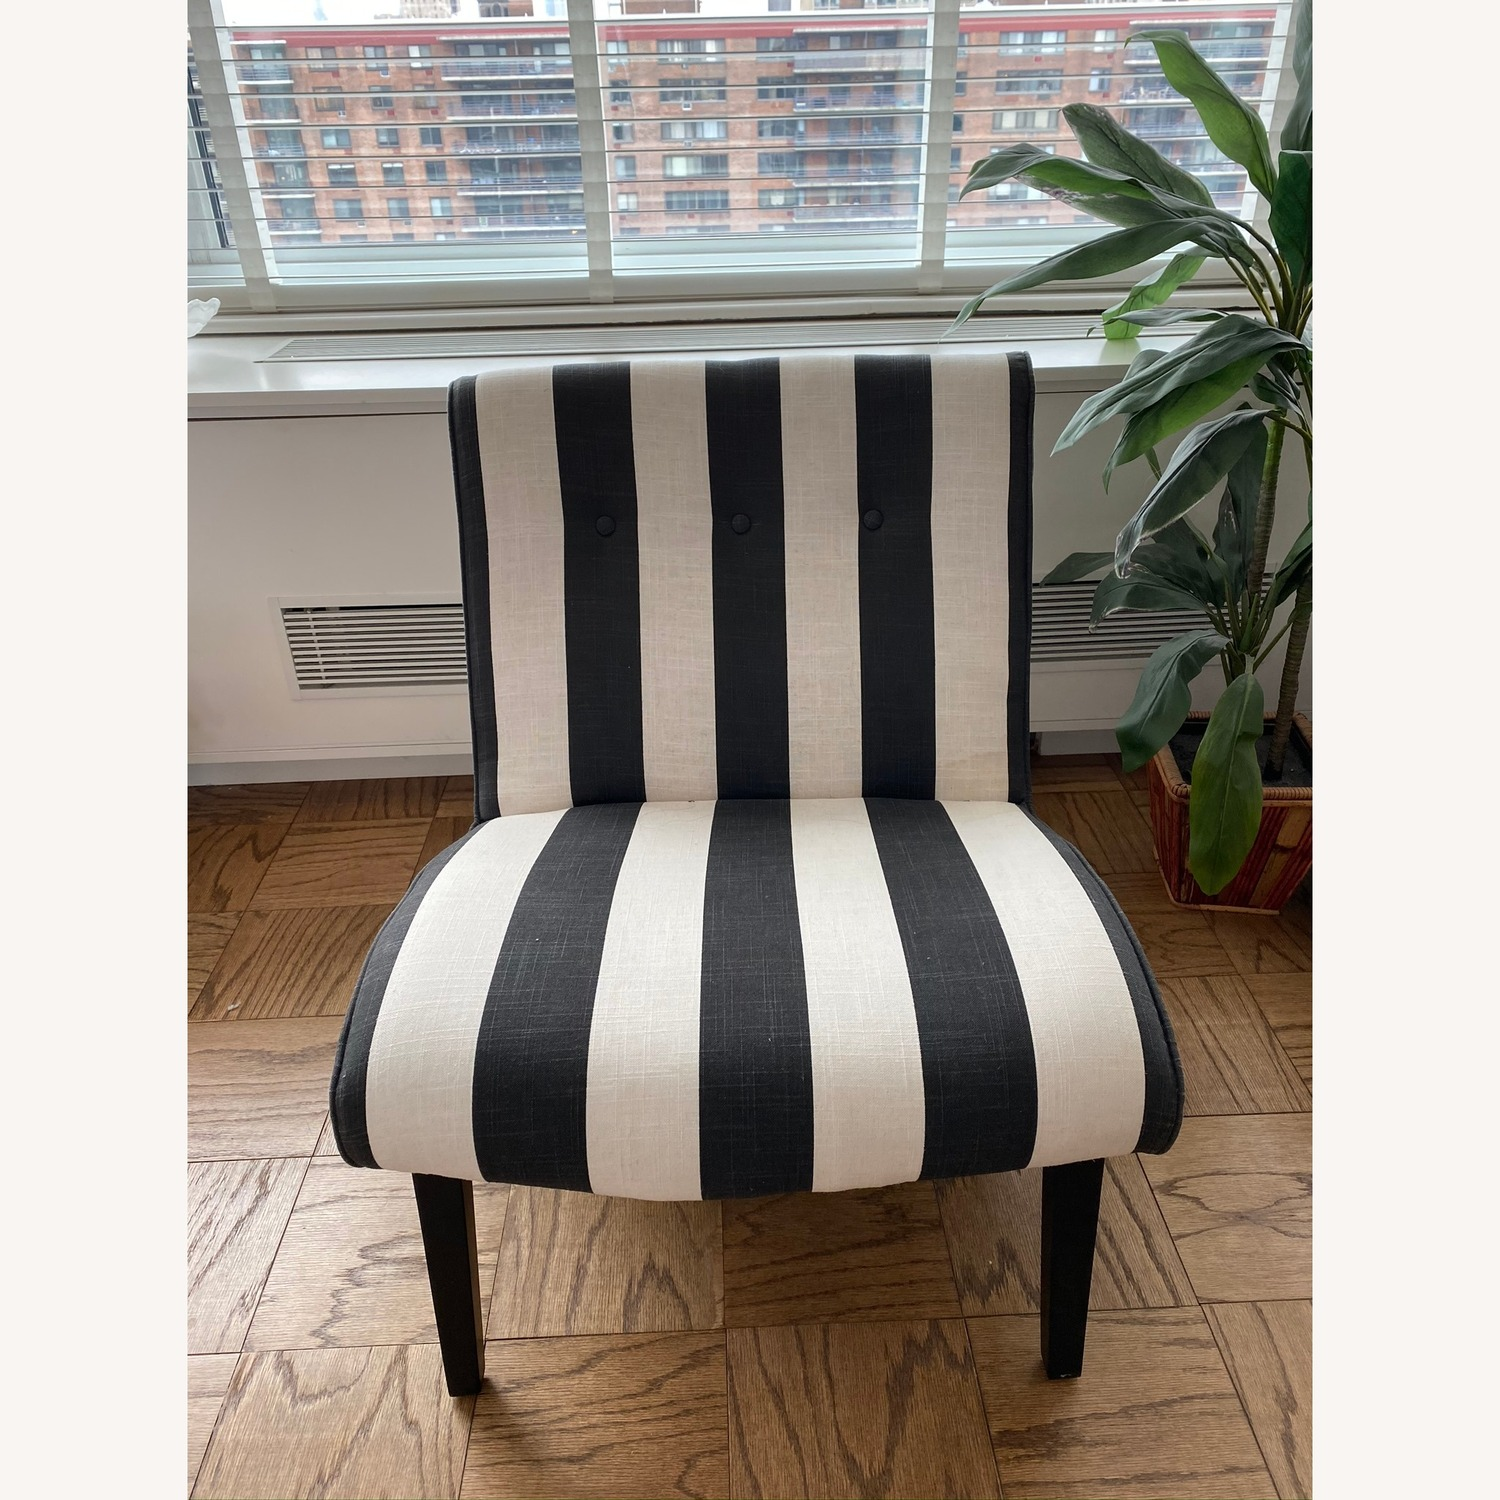 Black and White Accent Chair